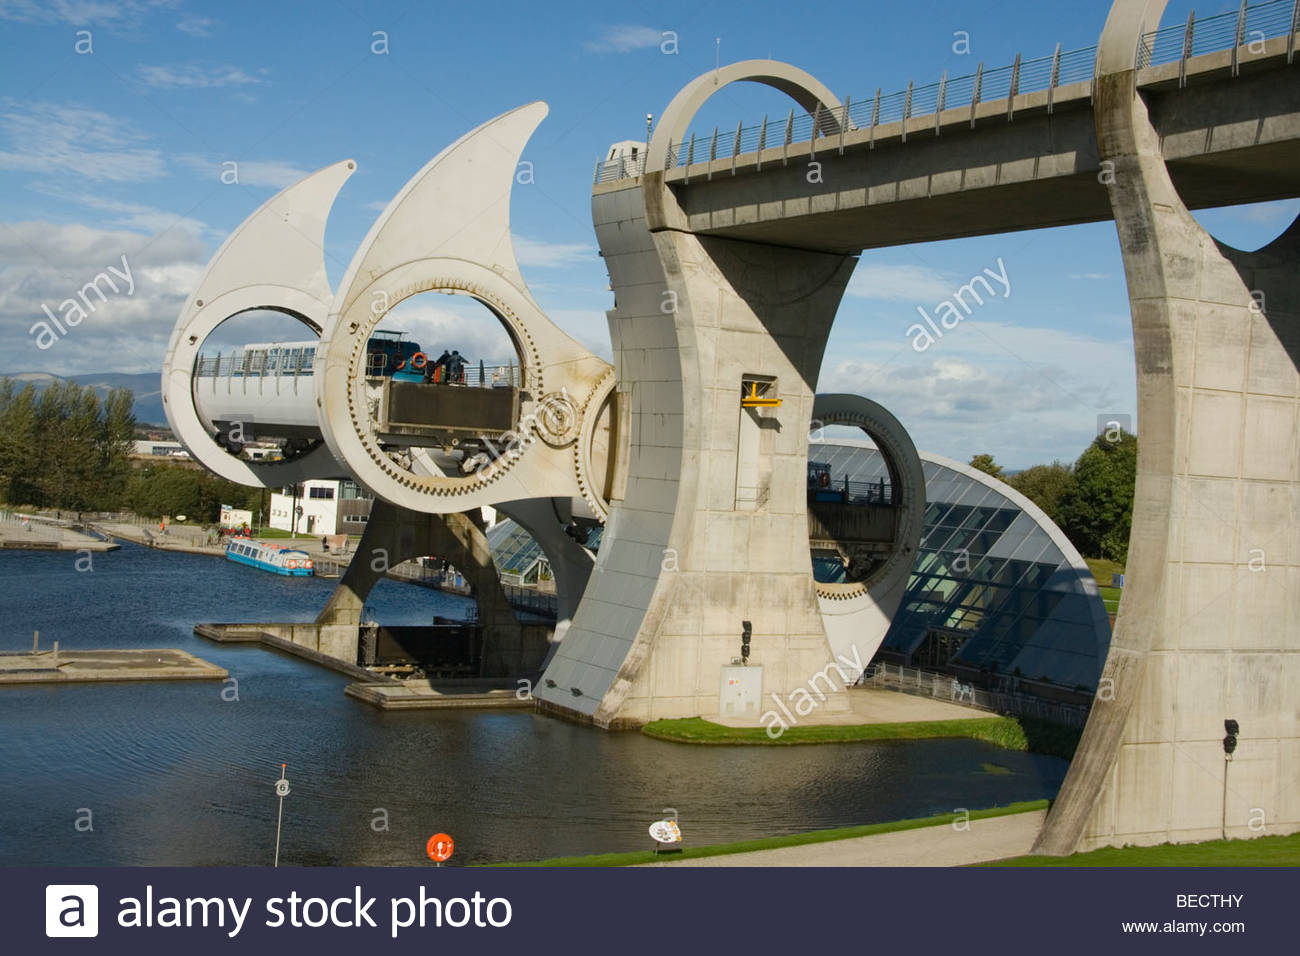 Scotland Falkirk Wheel Gondola in Rotation - Stock Image